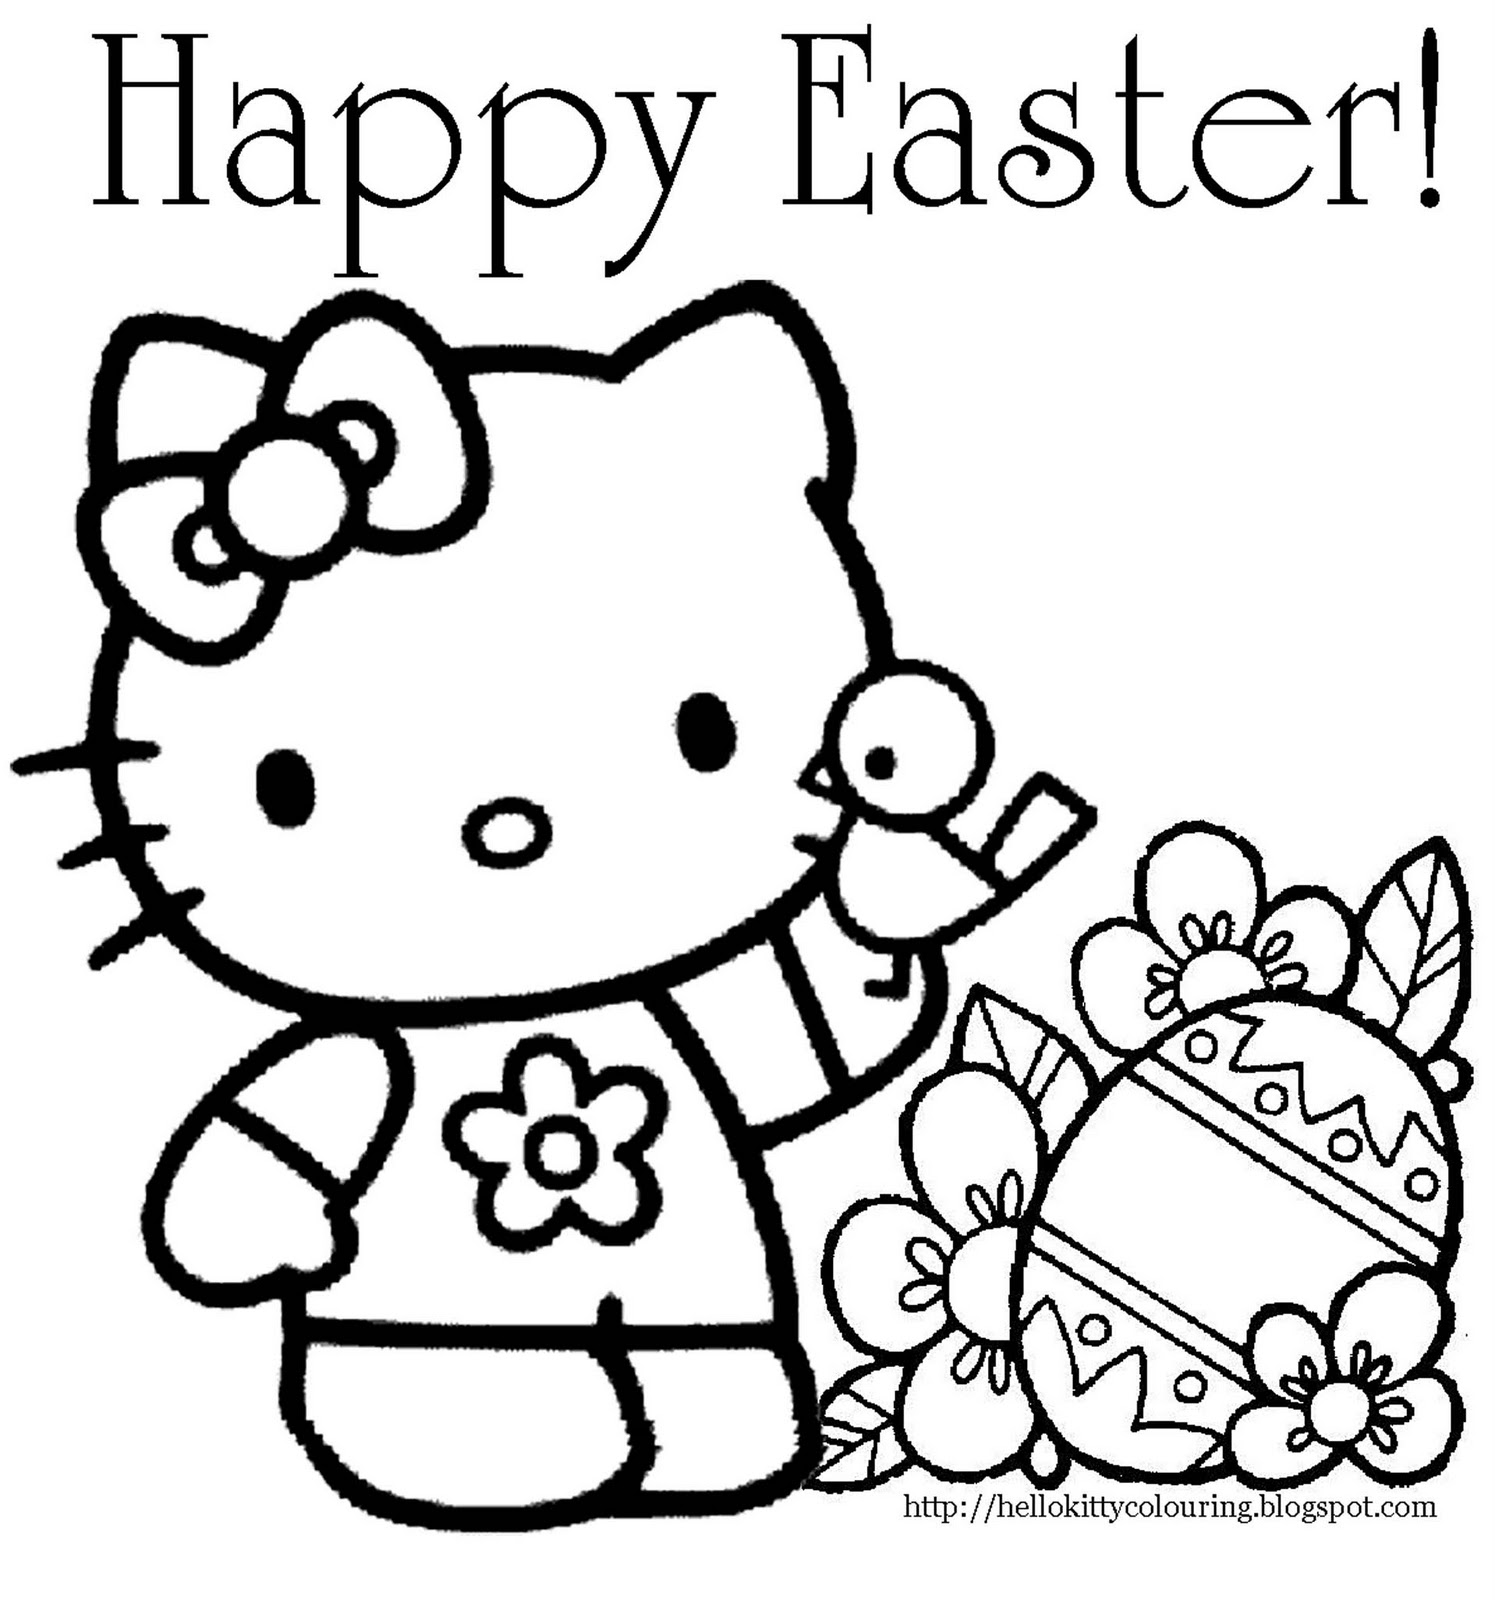 a coloring pages of hello kitty | Interactive Magazine: HELLO KITTY EASTER COLORING PAGE